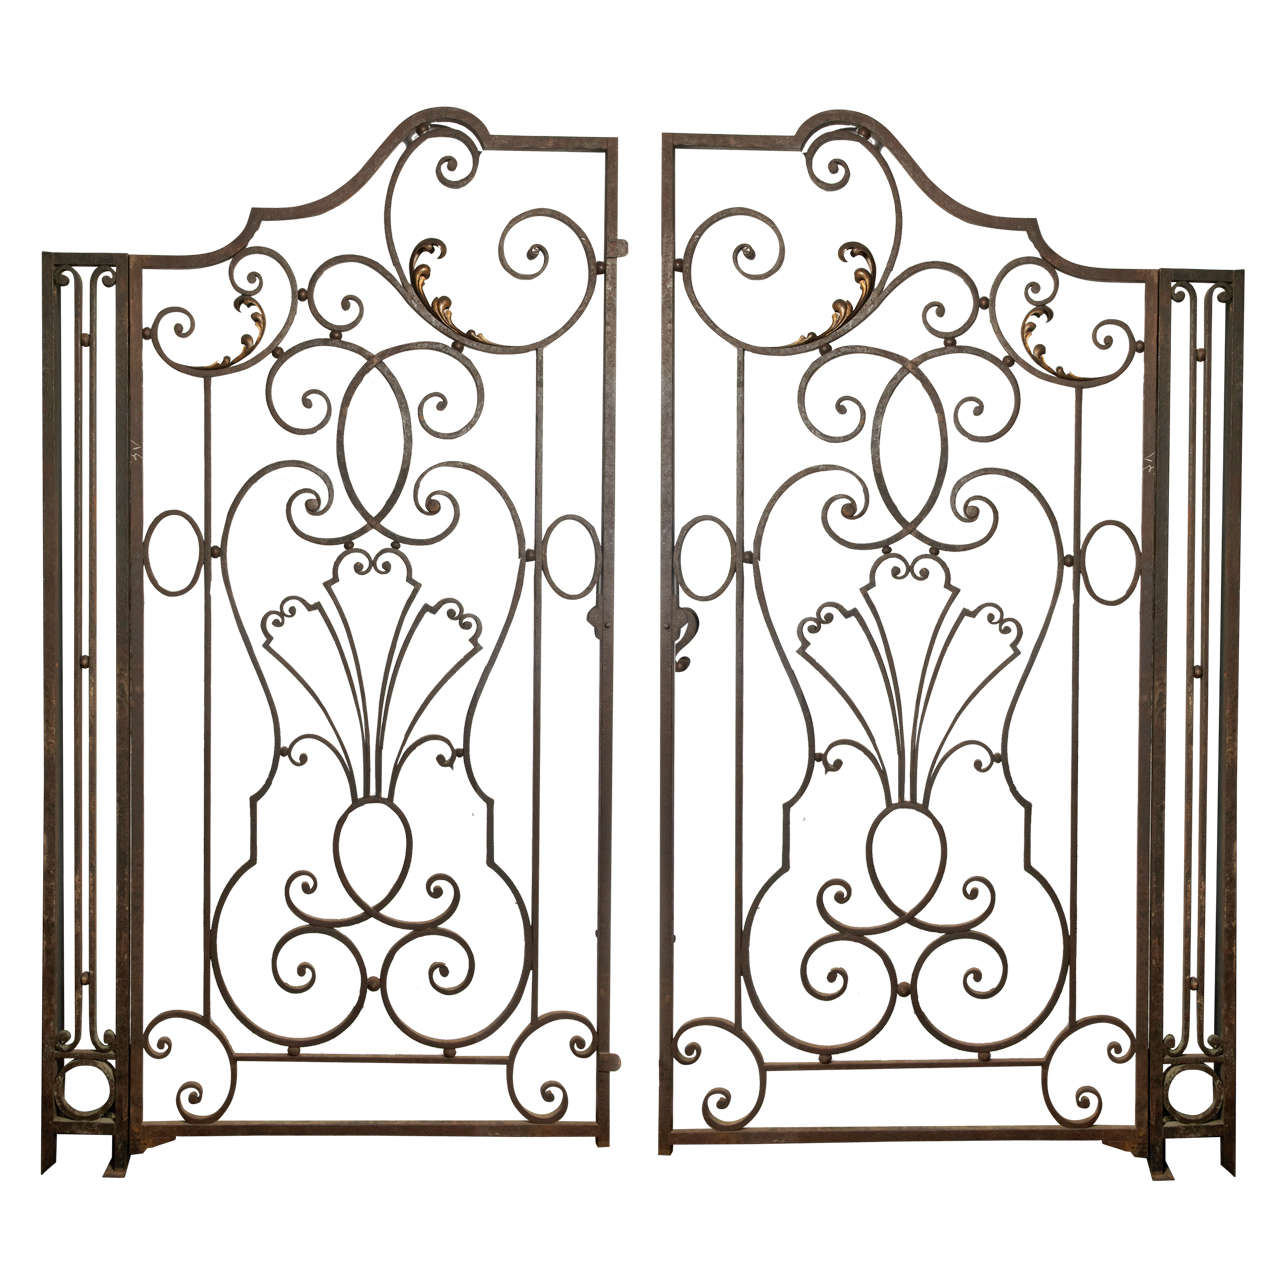 19th Wrought Iron Gate French Manufacture at 1stdibs